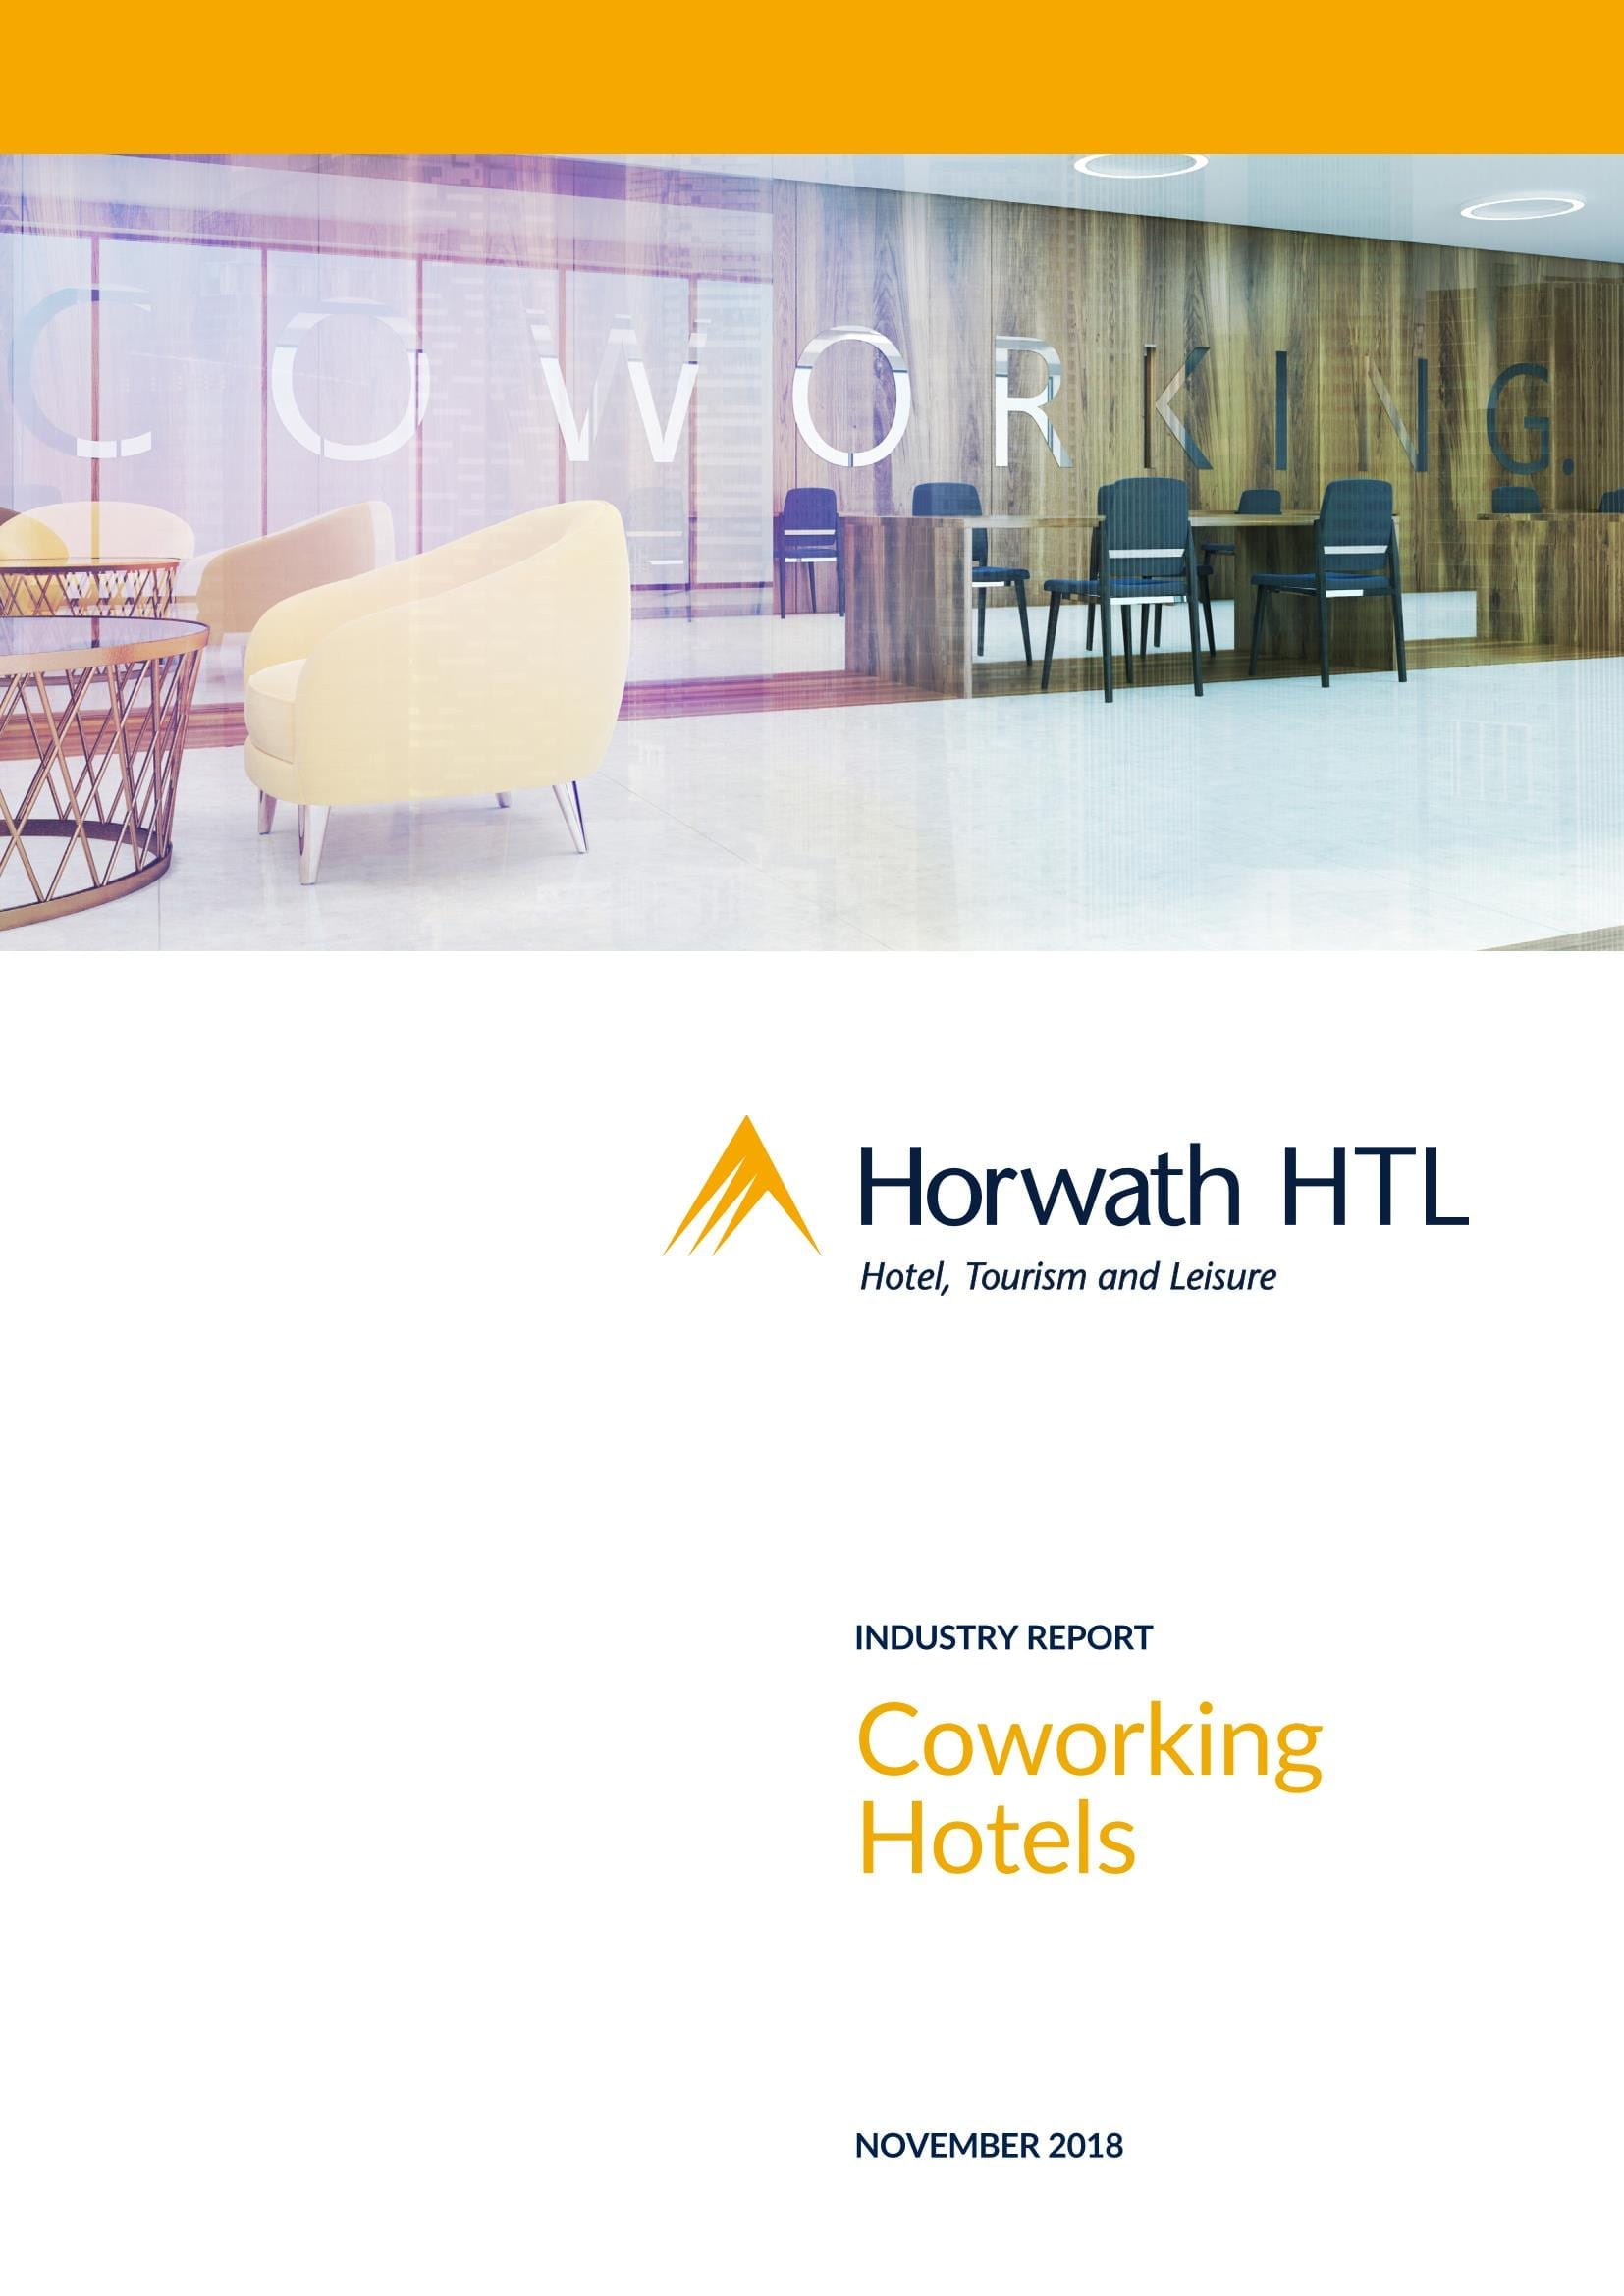 Horwath HTL Industry Report: Coworking Hotels